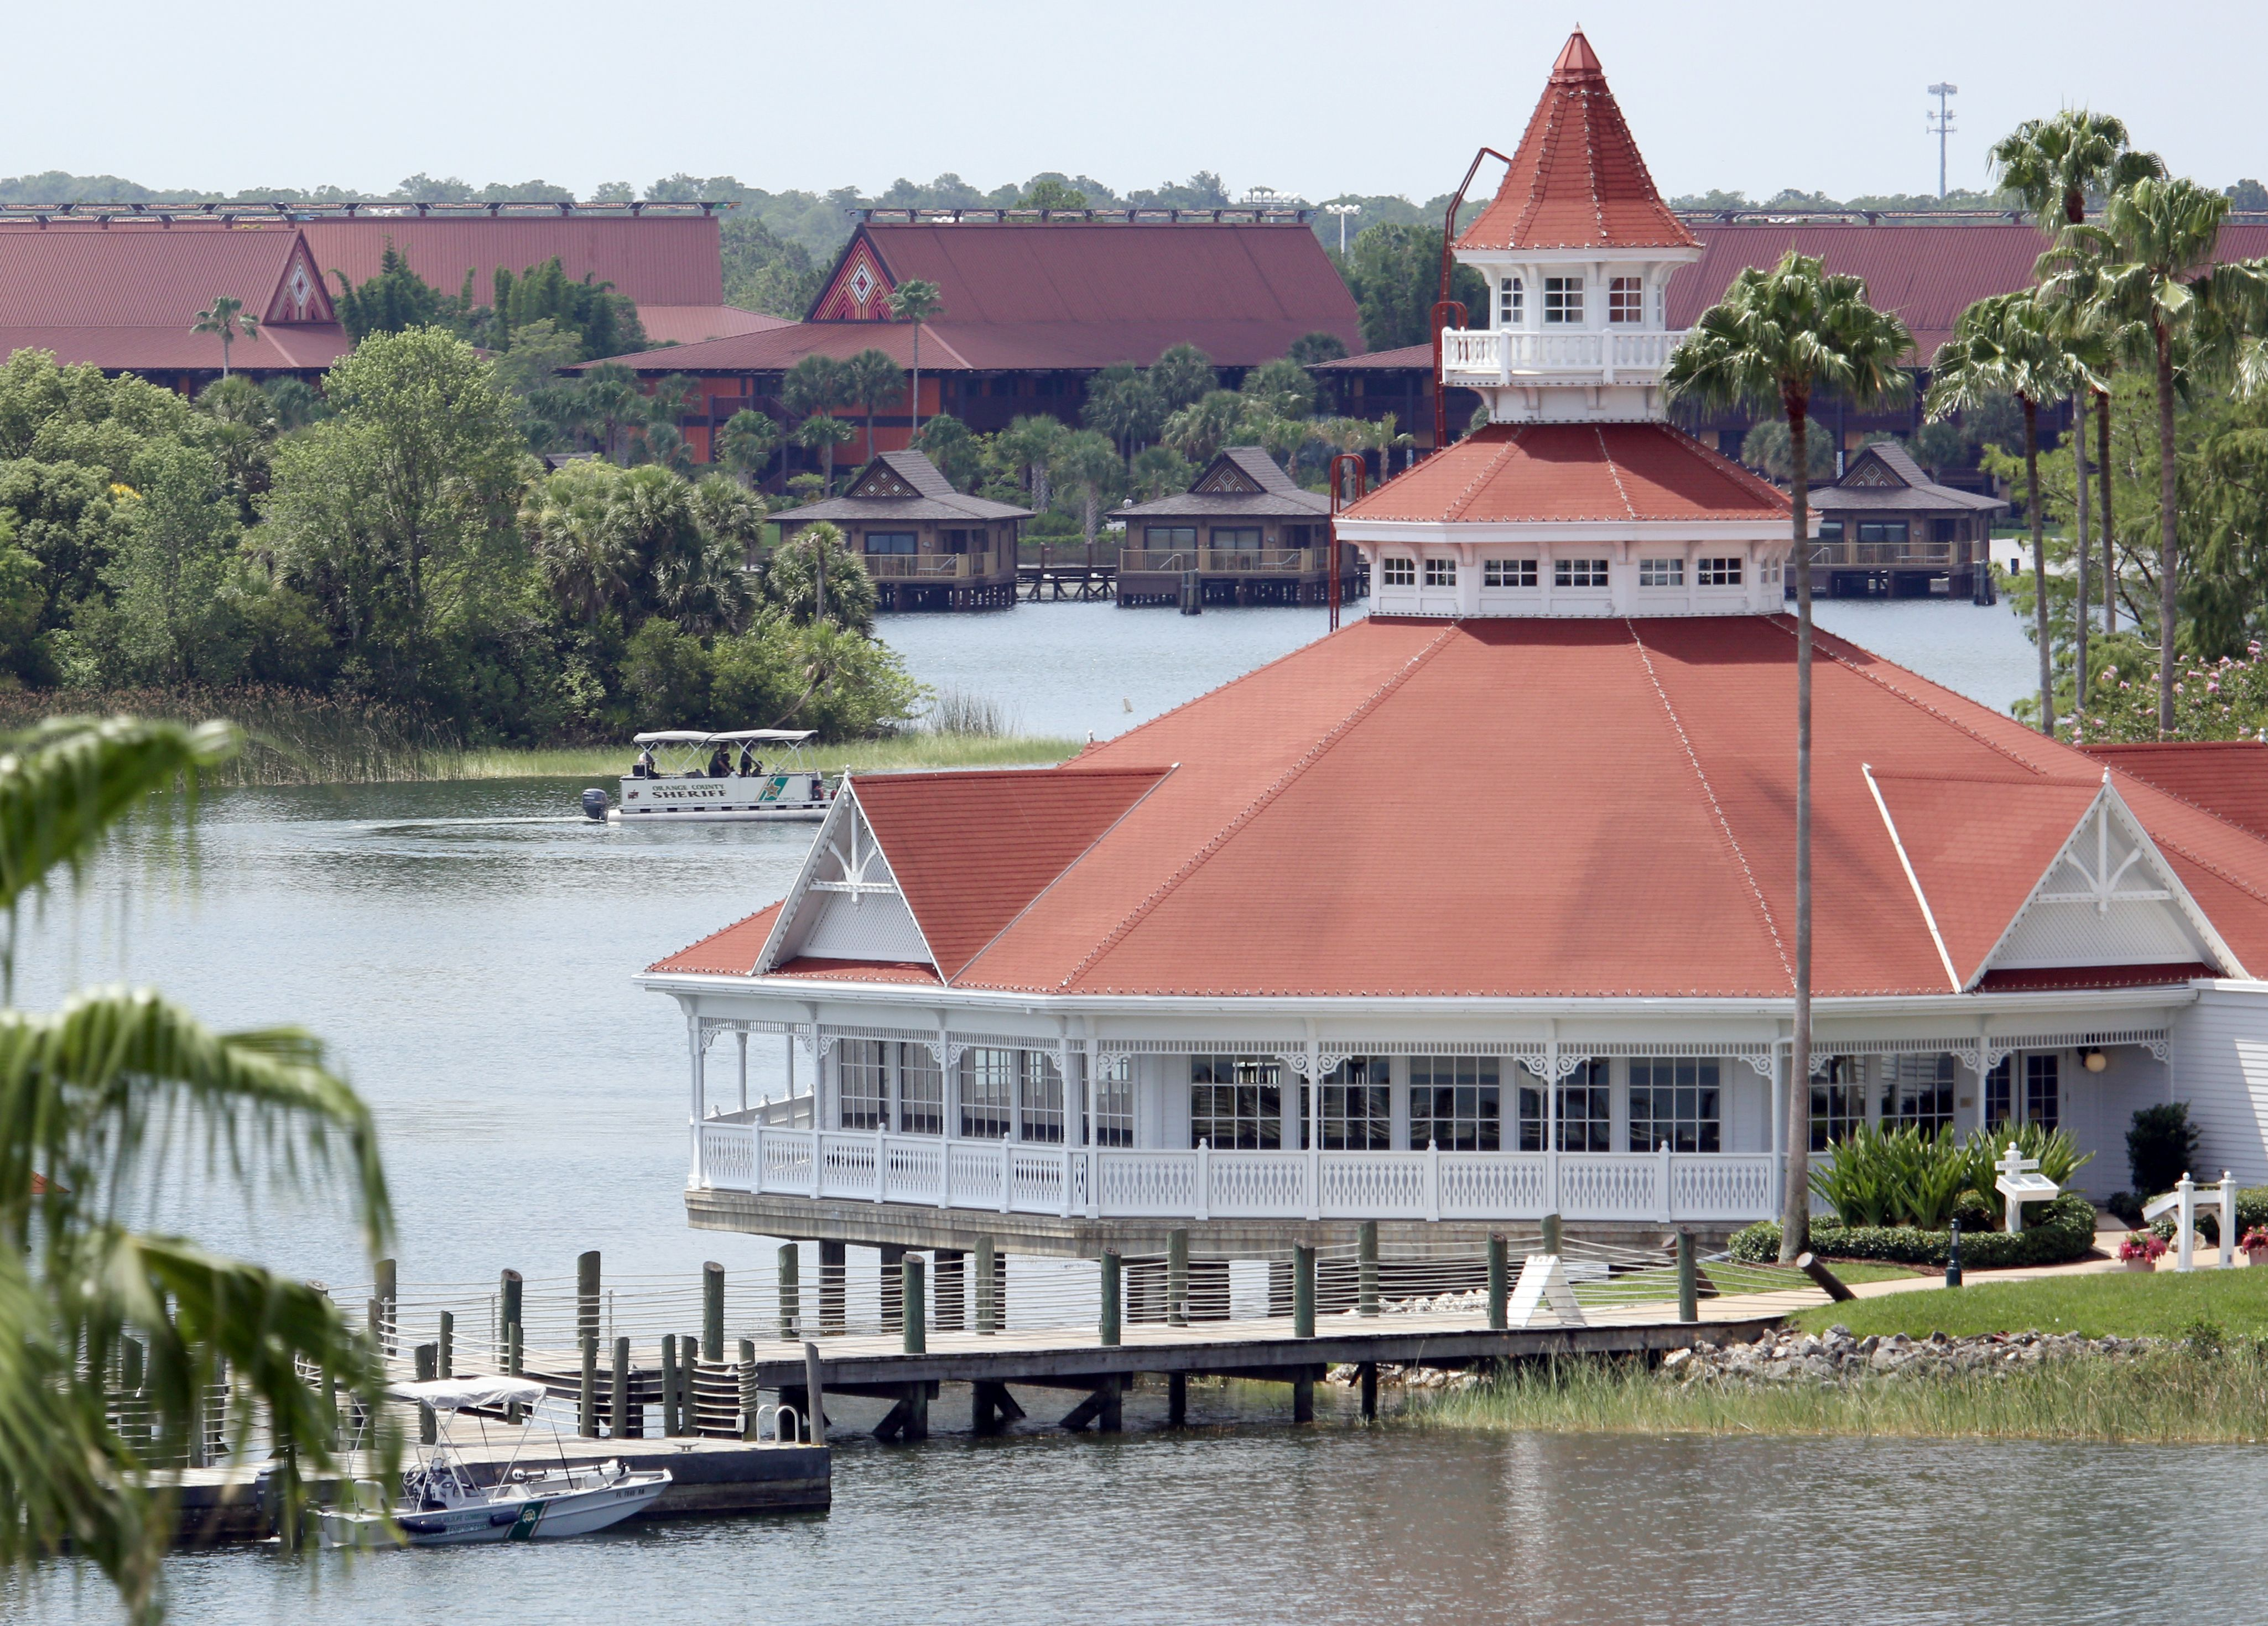 A boat belonging to the Florida Fish and Wildlife Conservation Commission is parked at a dock at the Seven Seas Lagoon outside Disney's Grand Floridian Resort & Spa near Orlando, Florida on June 15, 2016. (Getty)